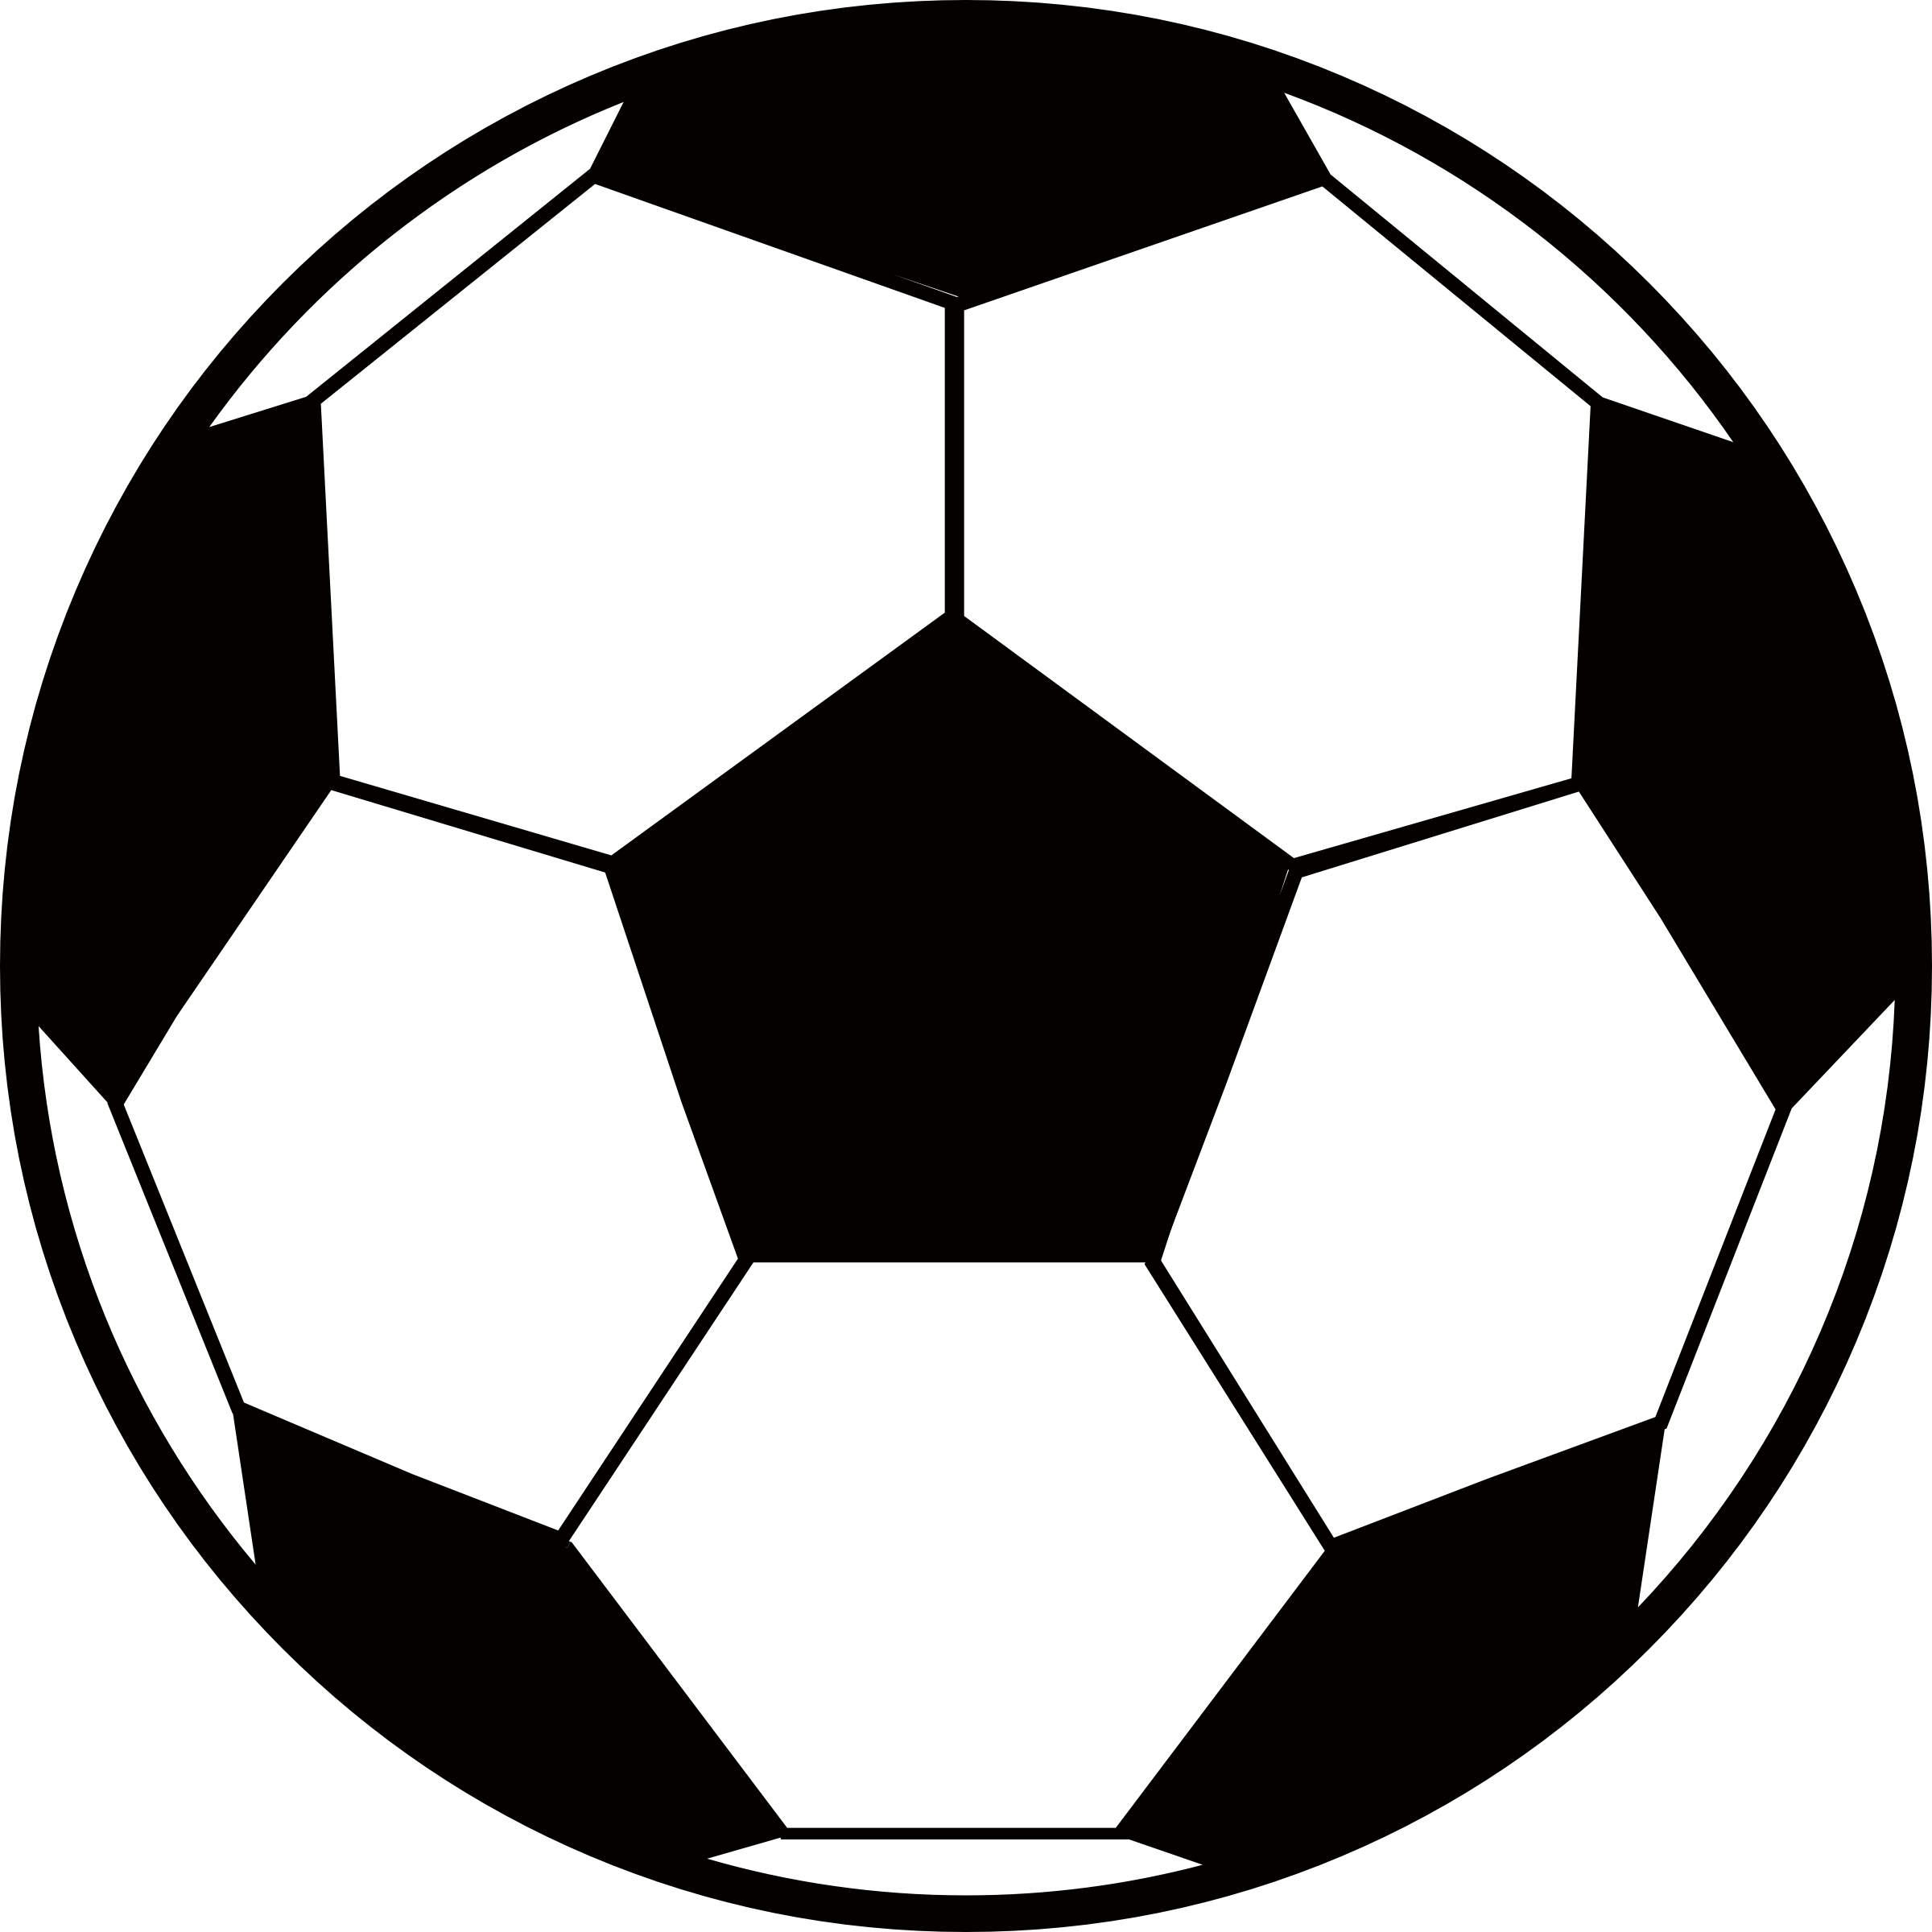 Words clipart soccer. Ball big image png